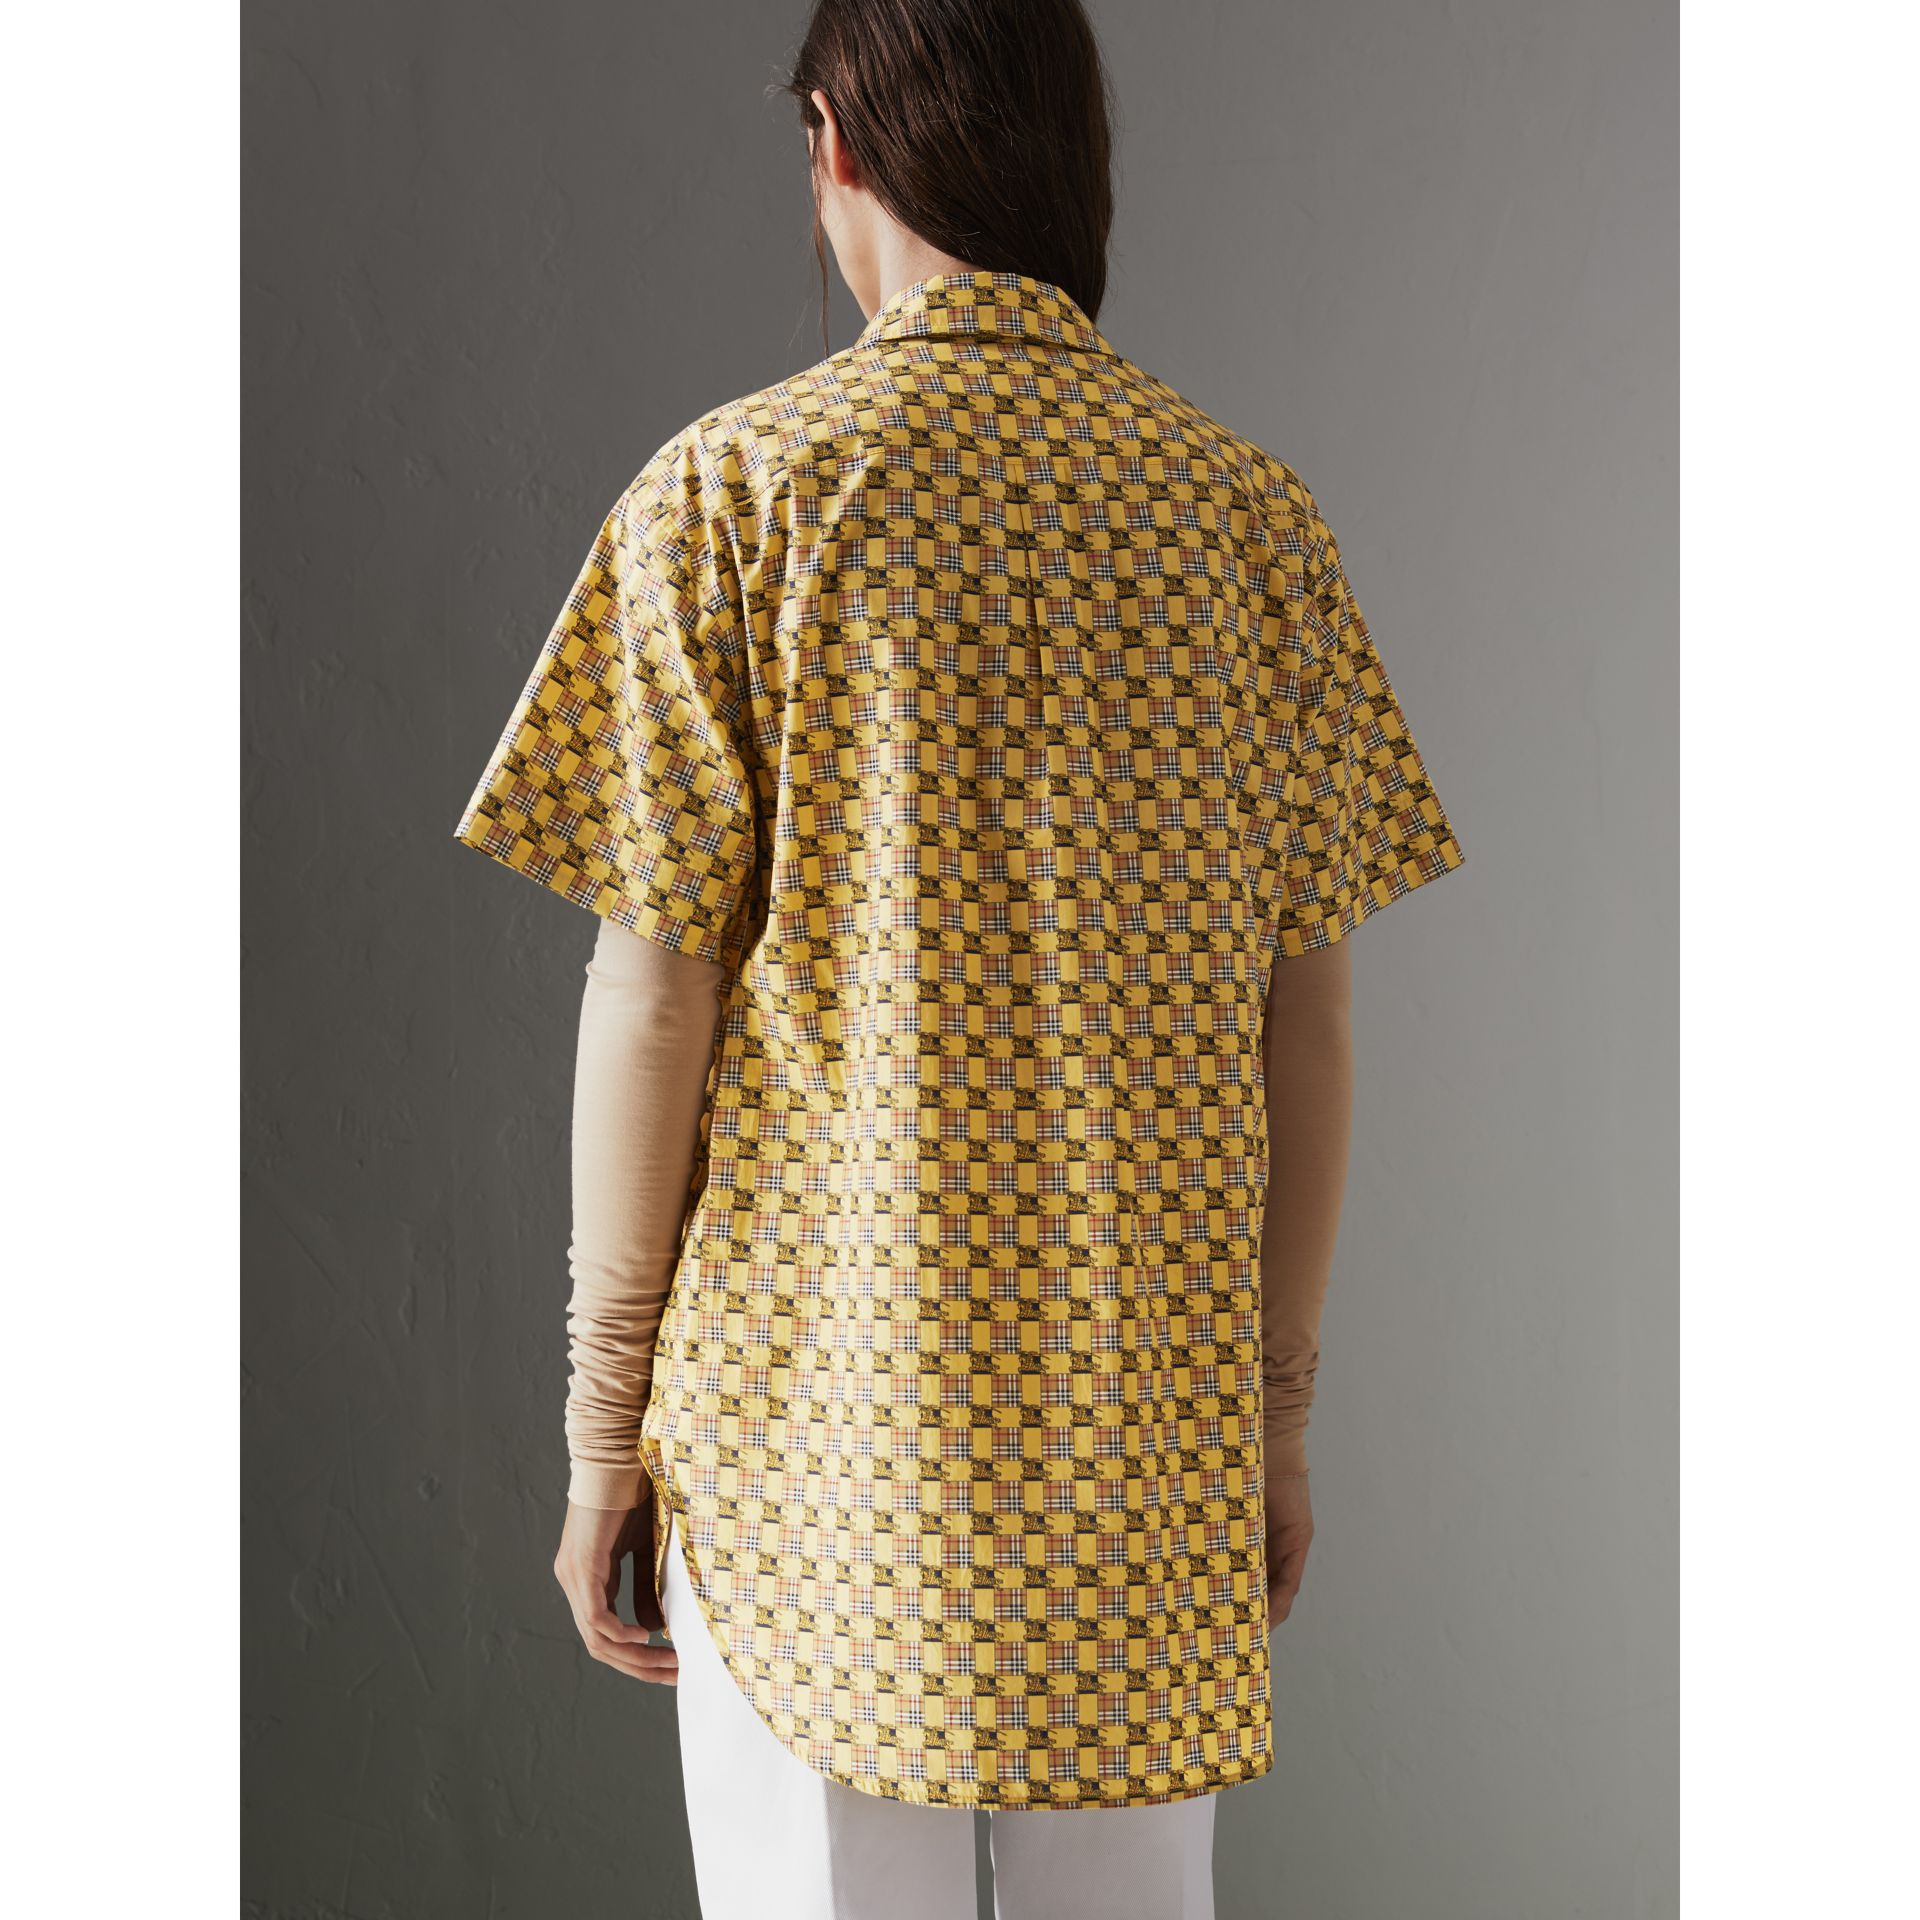 Short-sleeve Tiled Archive Print Cotton Shirt in Yellow - Women | Burberry United Kingdom - gallery image 2